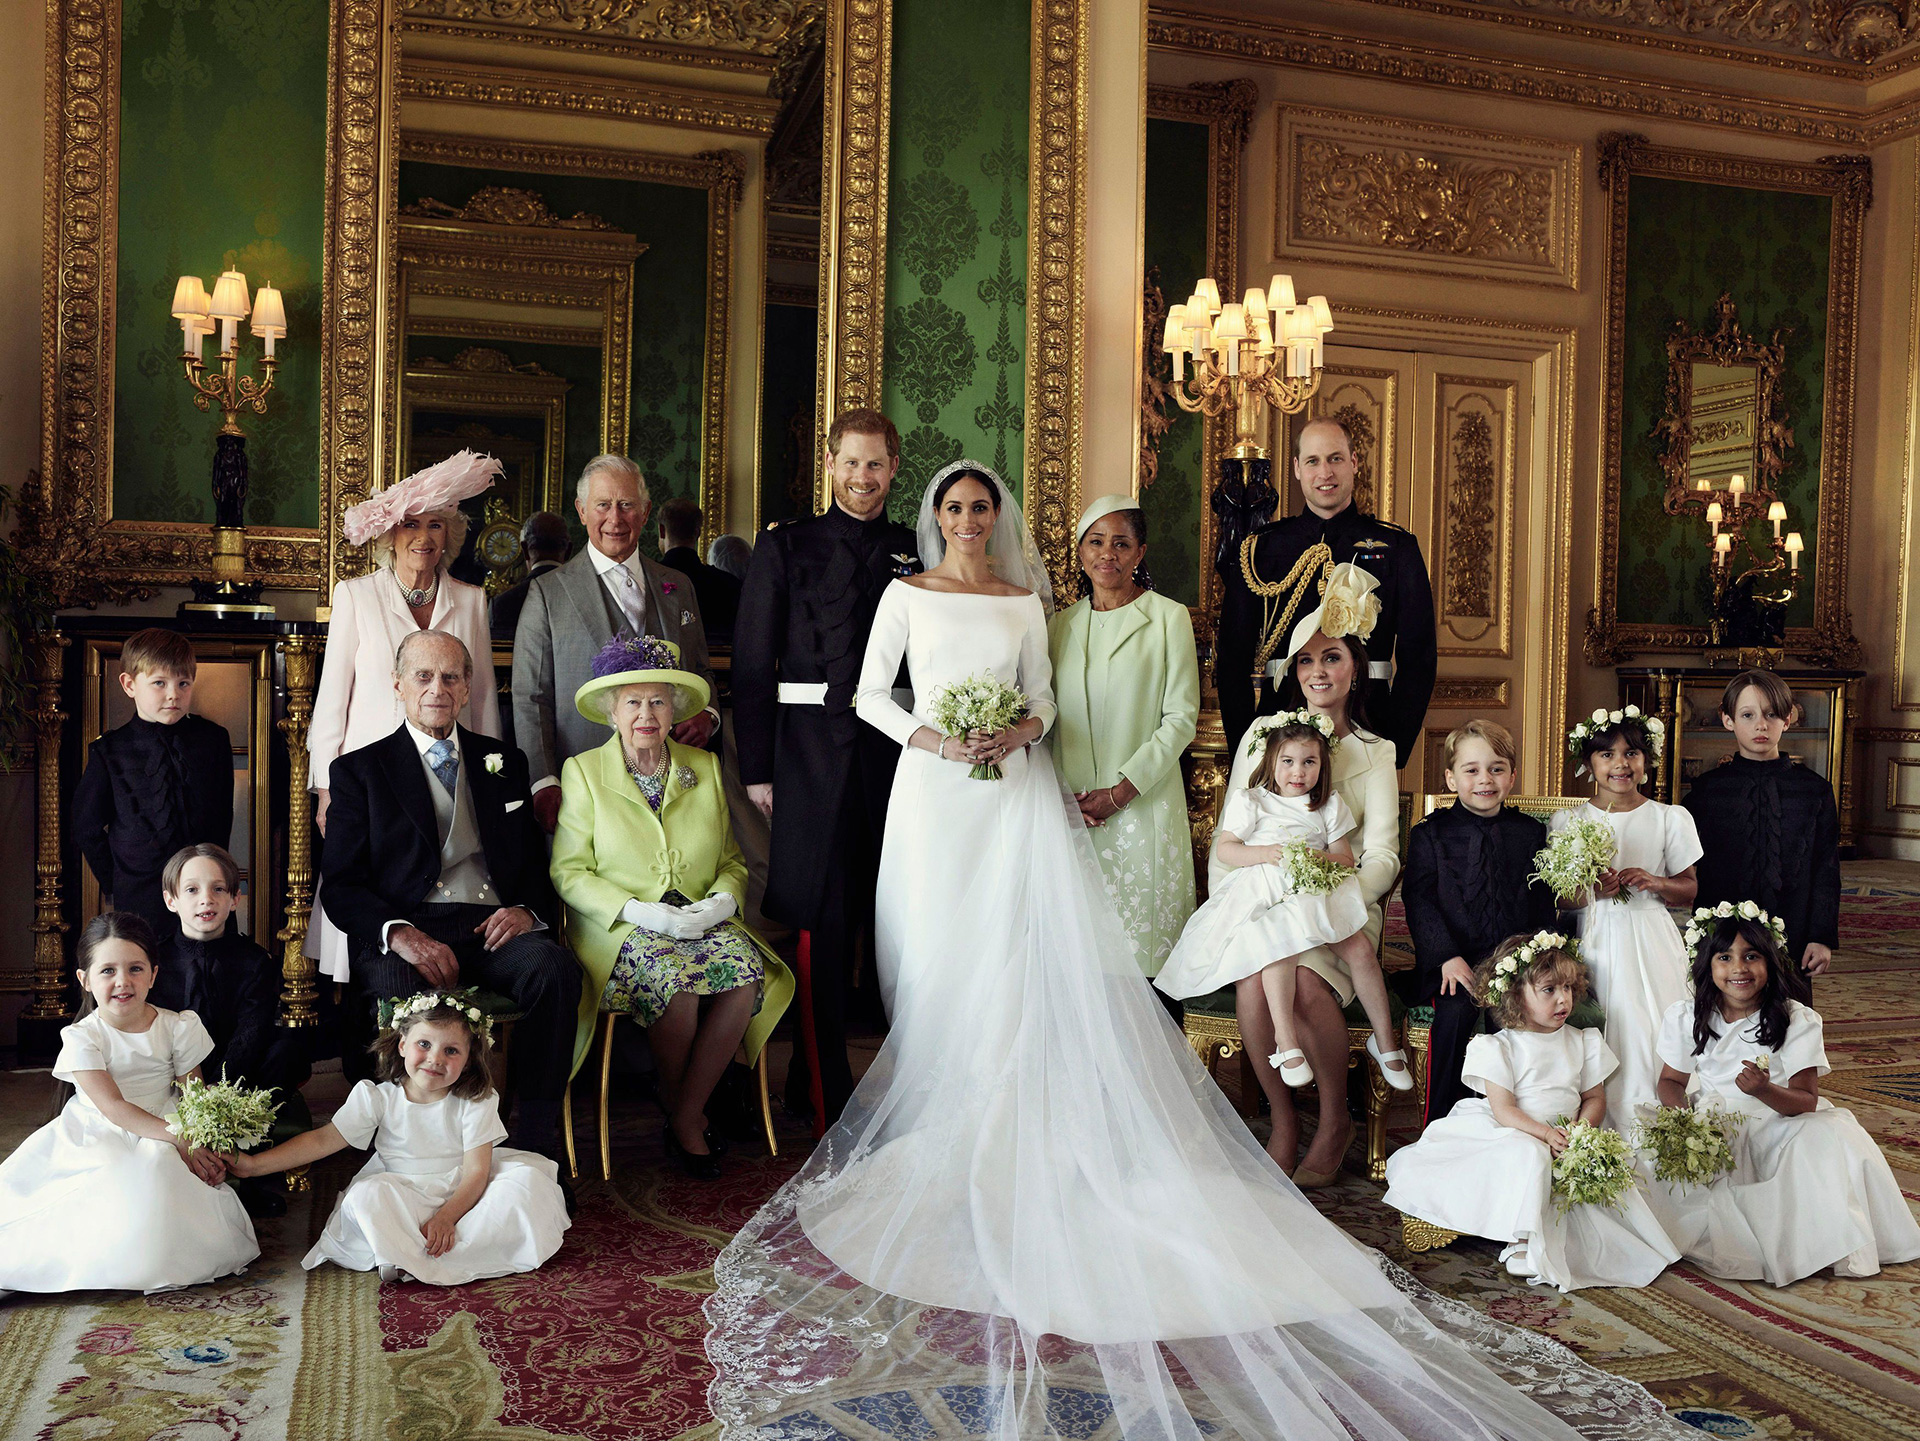 The Duke and Duchess of Sussex Official Wedding Photograph